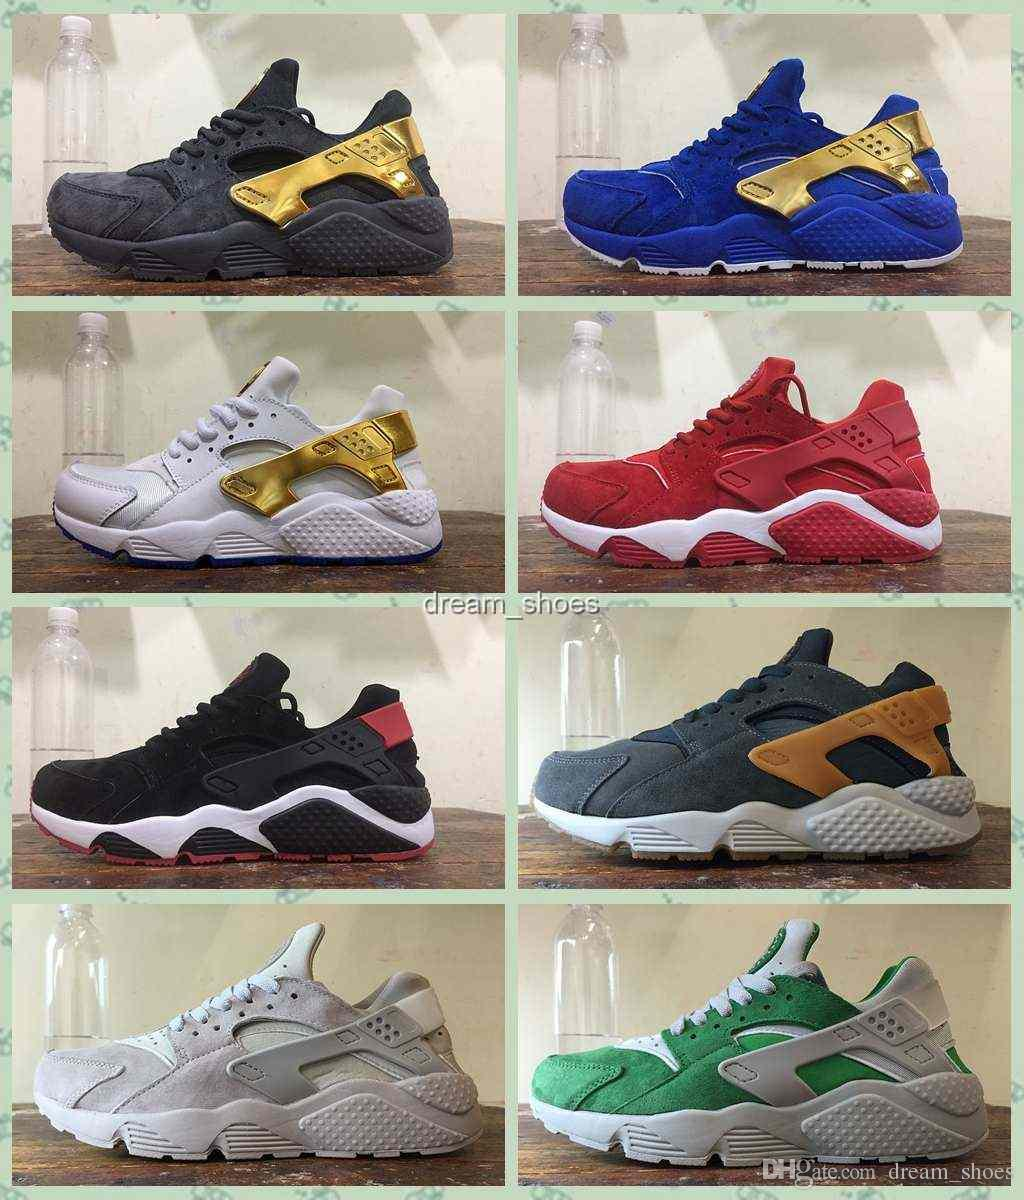 f3feb0d1f56f 2017 UNDEFEATED X Air Huarache Shoes Women And Mens Air Flight Huarache  Nubuck Running Shoes Sneakers Huaraches Sneakers Shoes Size 36 46 Men  Sports Shoes ...